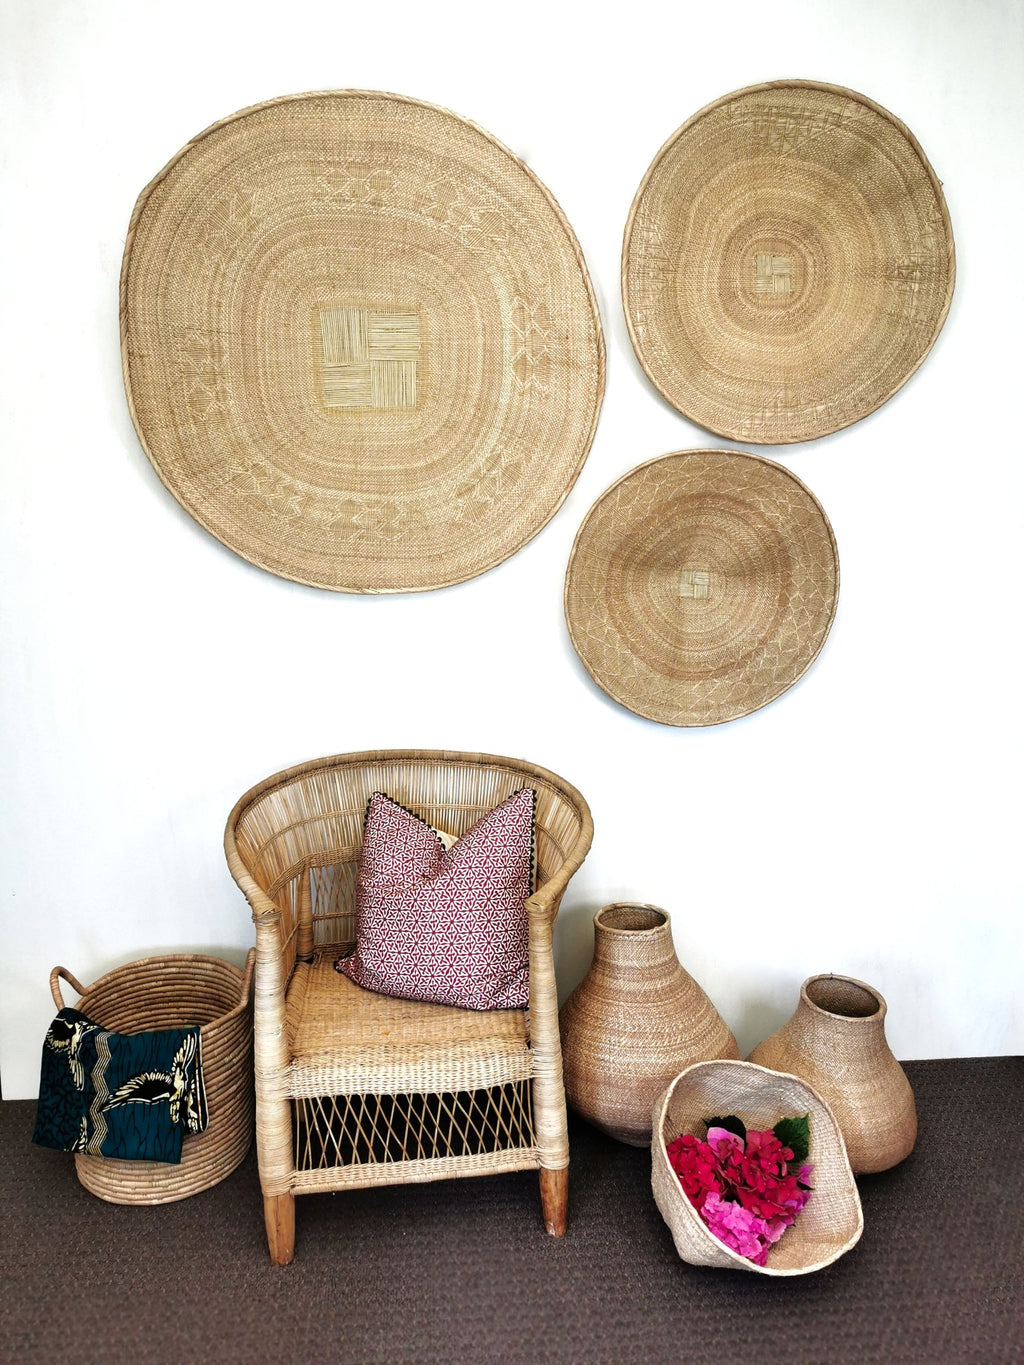 Malawi Chair - One Seater - Artisans Bloom